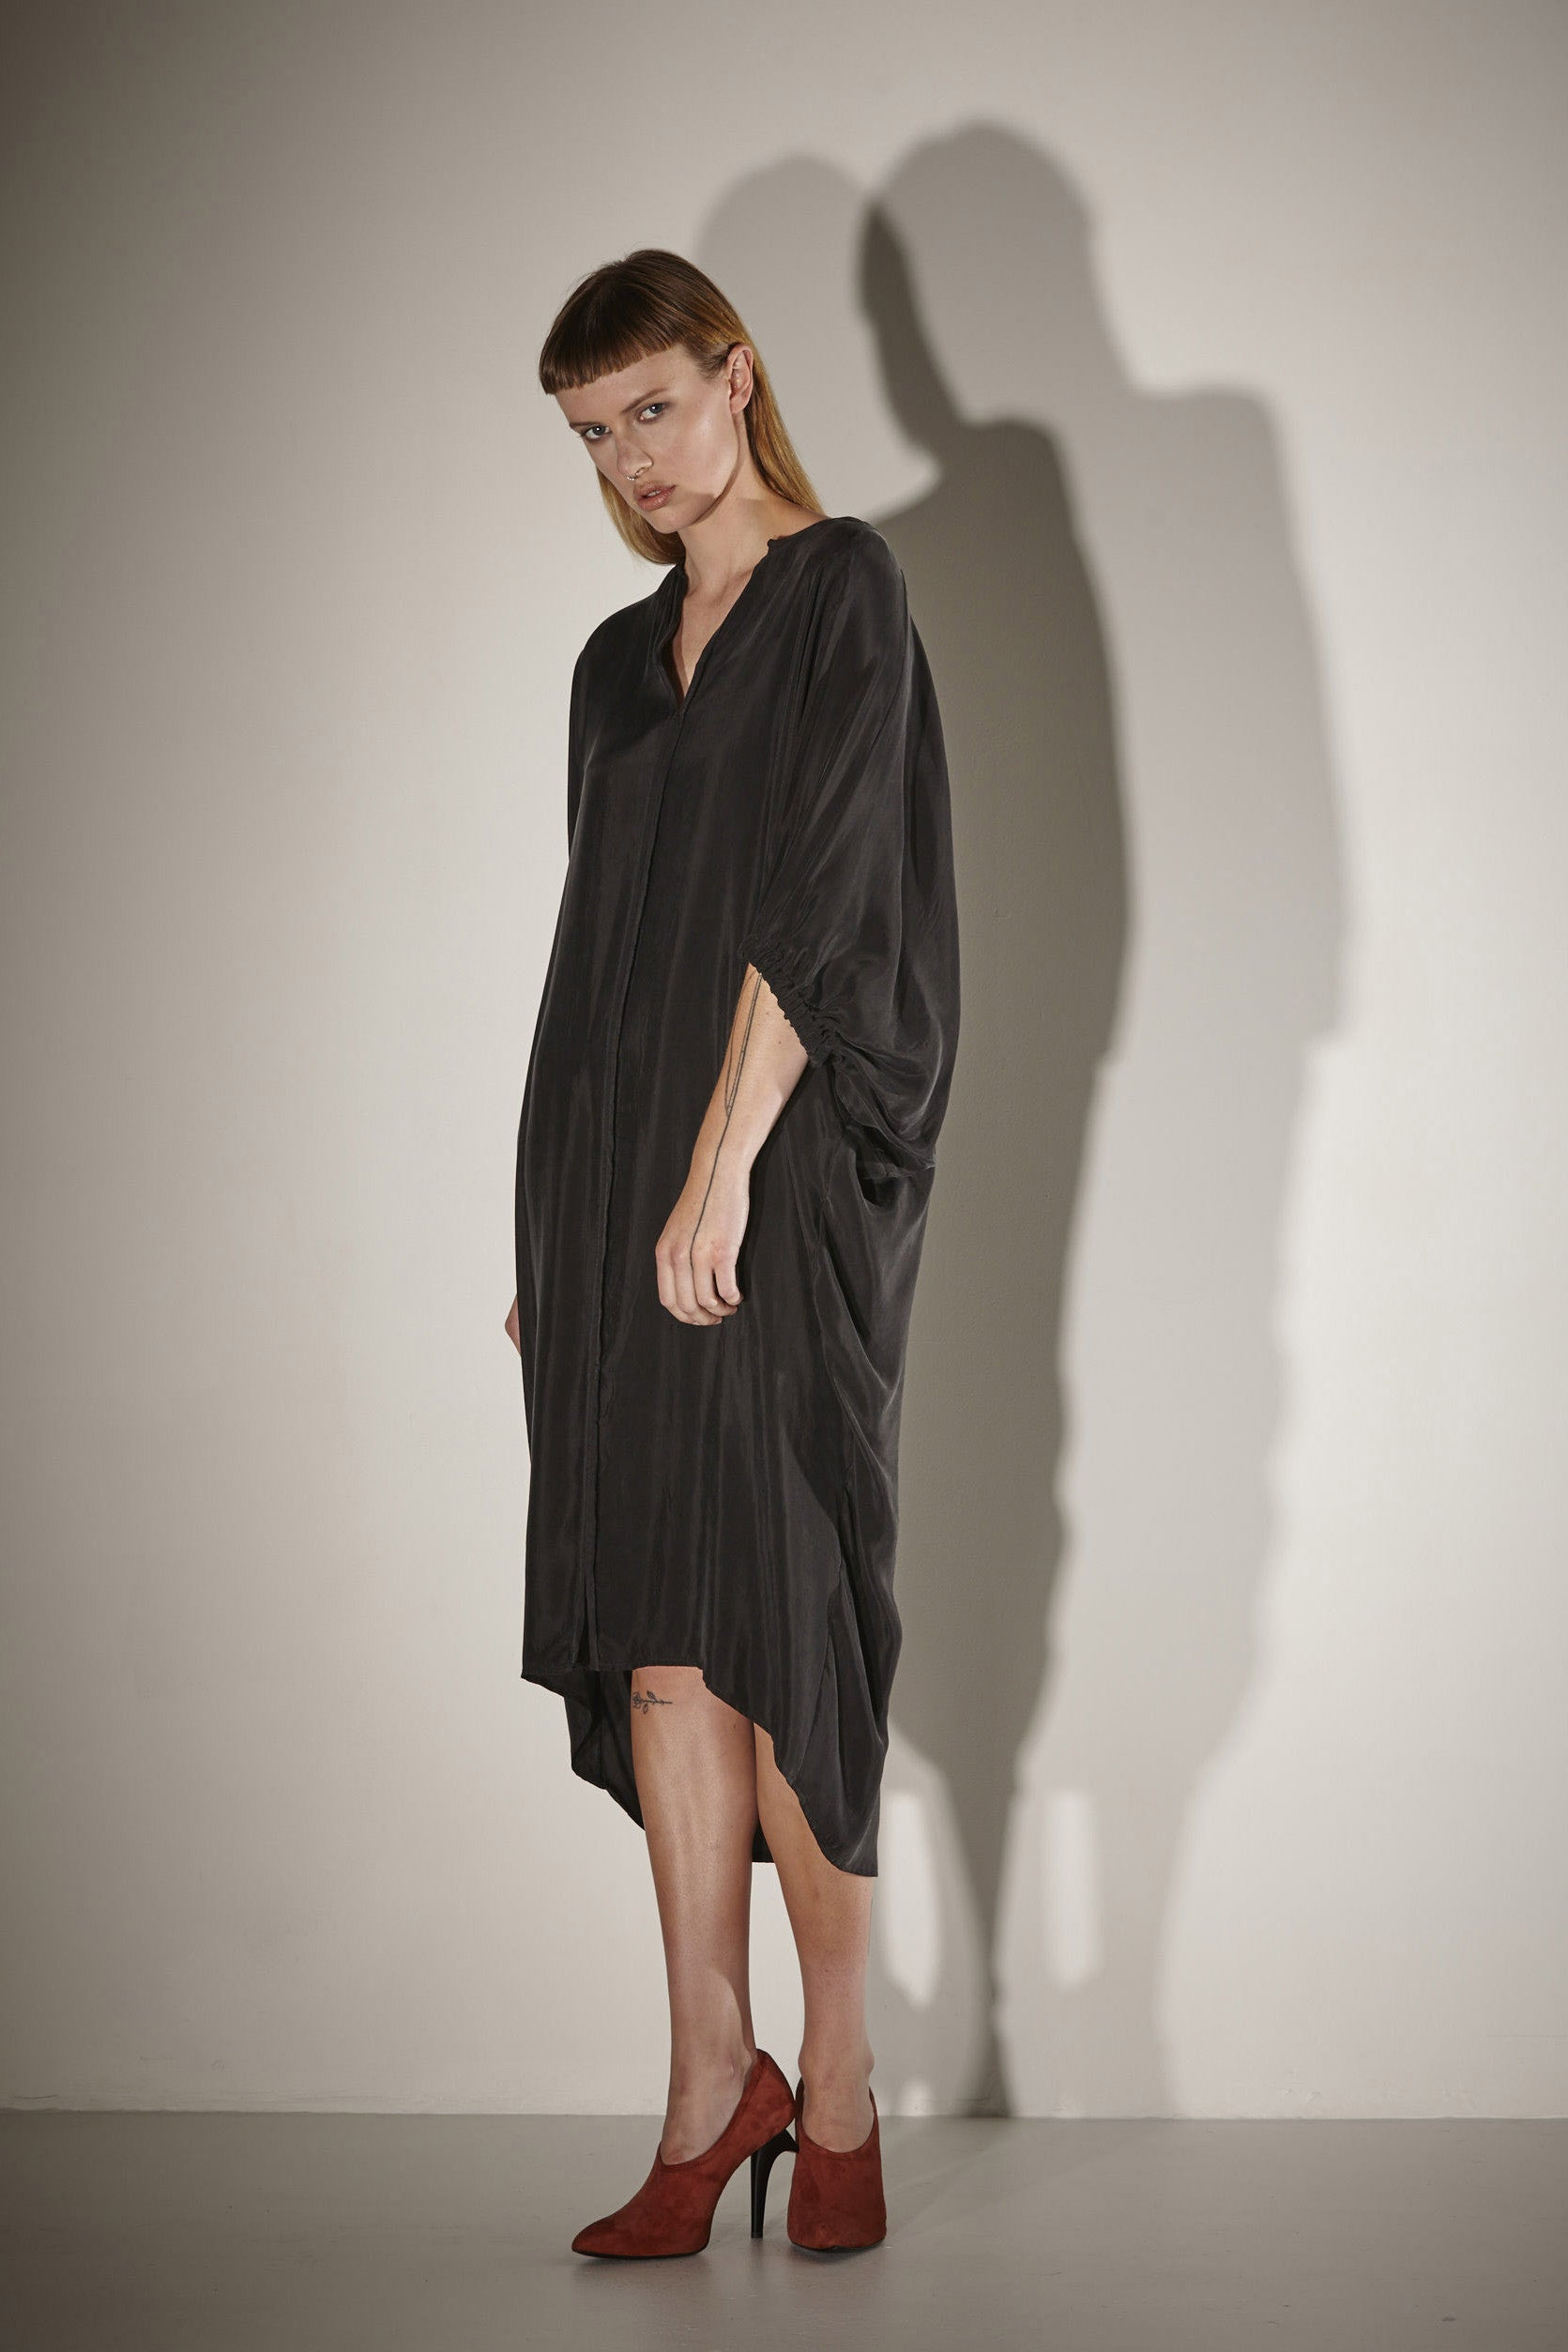 Ricochet NZ Fashion Designer Clothing SS17 Cupro Batwing Sleeve Mizu Dress Made in NZ Black